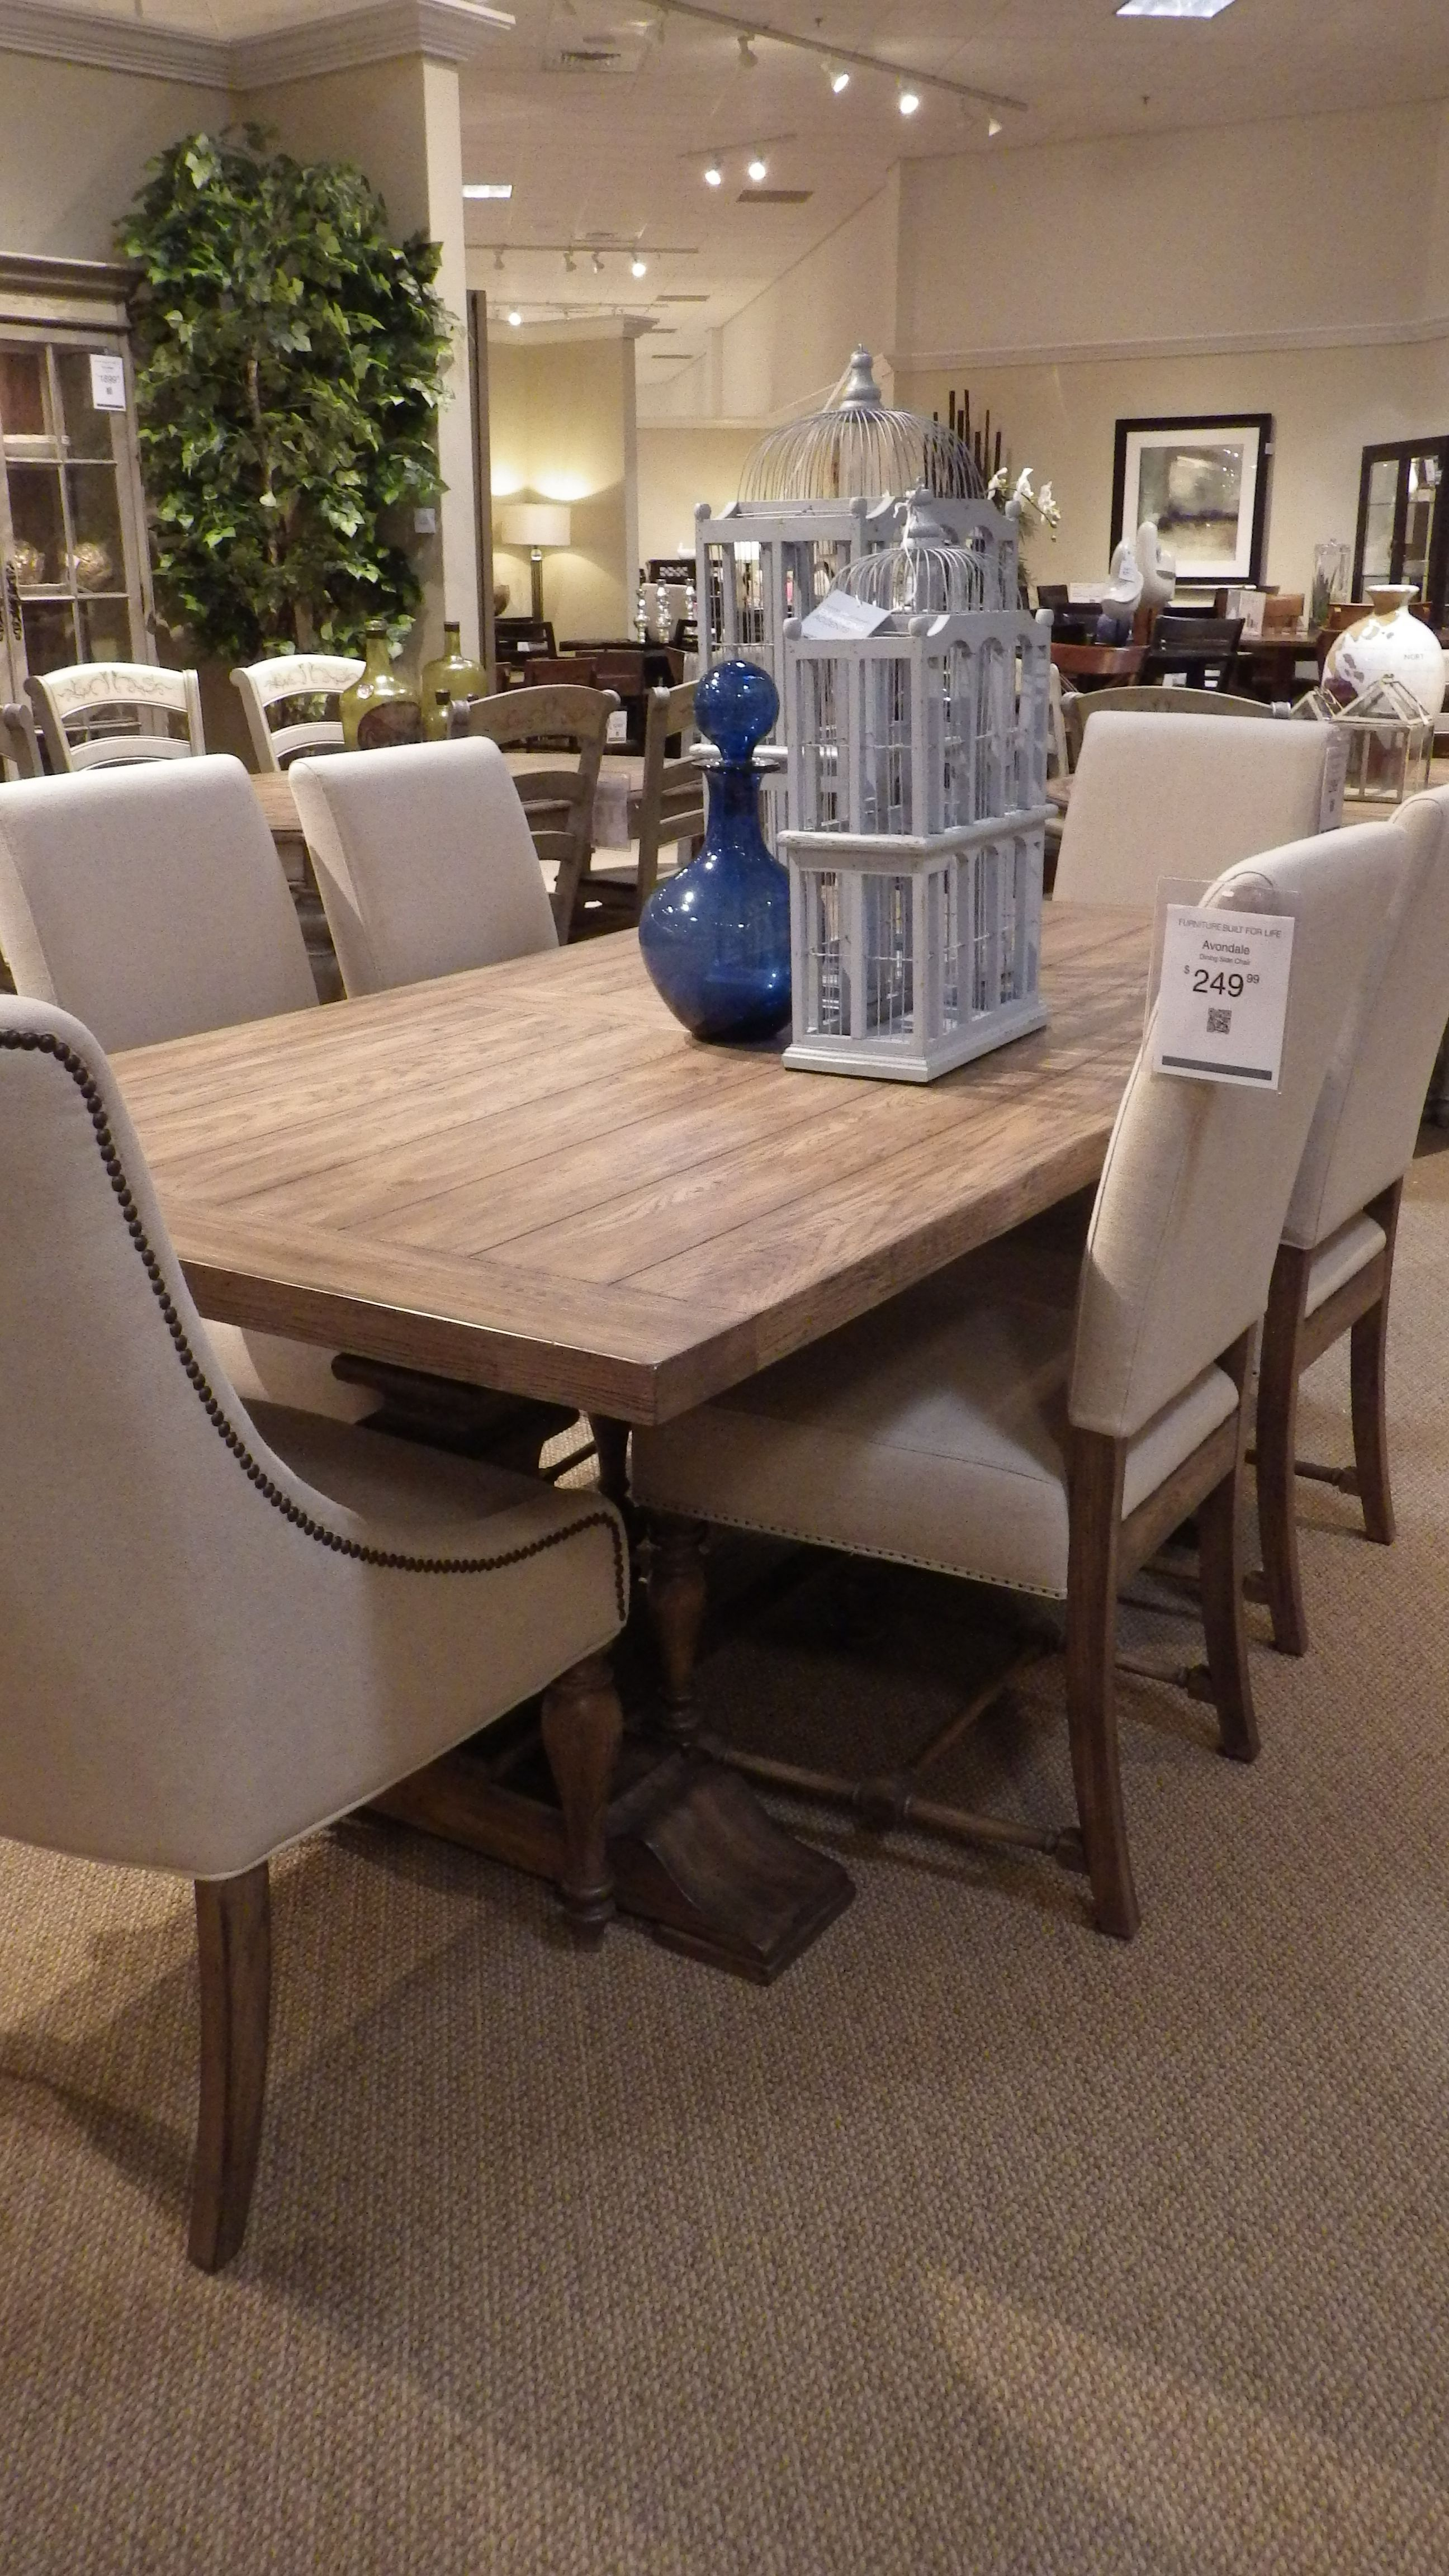 Havertys Kitchen Table Setshavertys Kitchen Table Sets Ever End Up In The Kitchen At A Home Occasion Avondale Table Kitchen Table Settings Dining Room Table